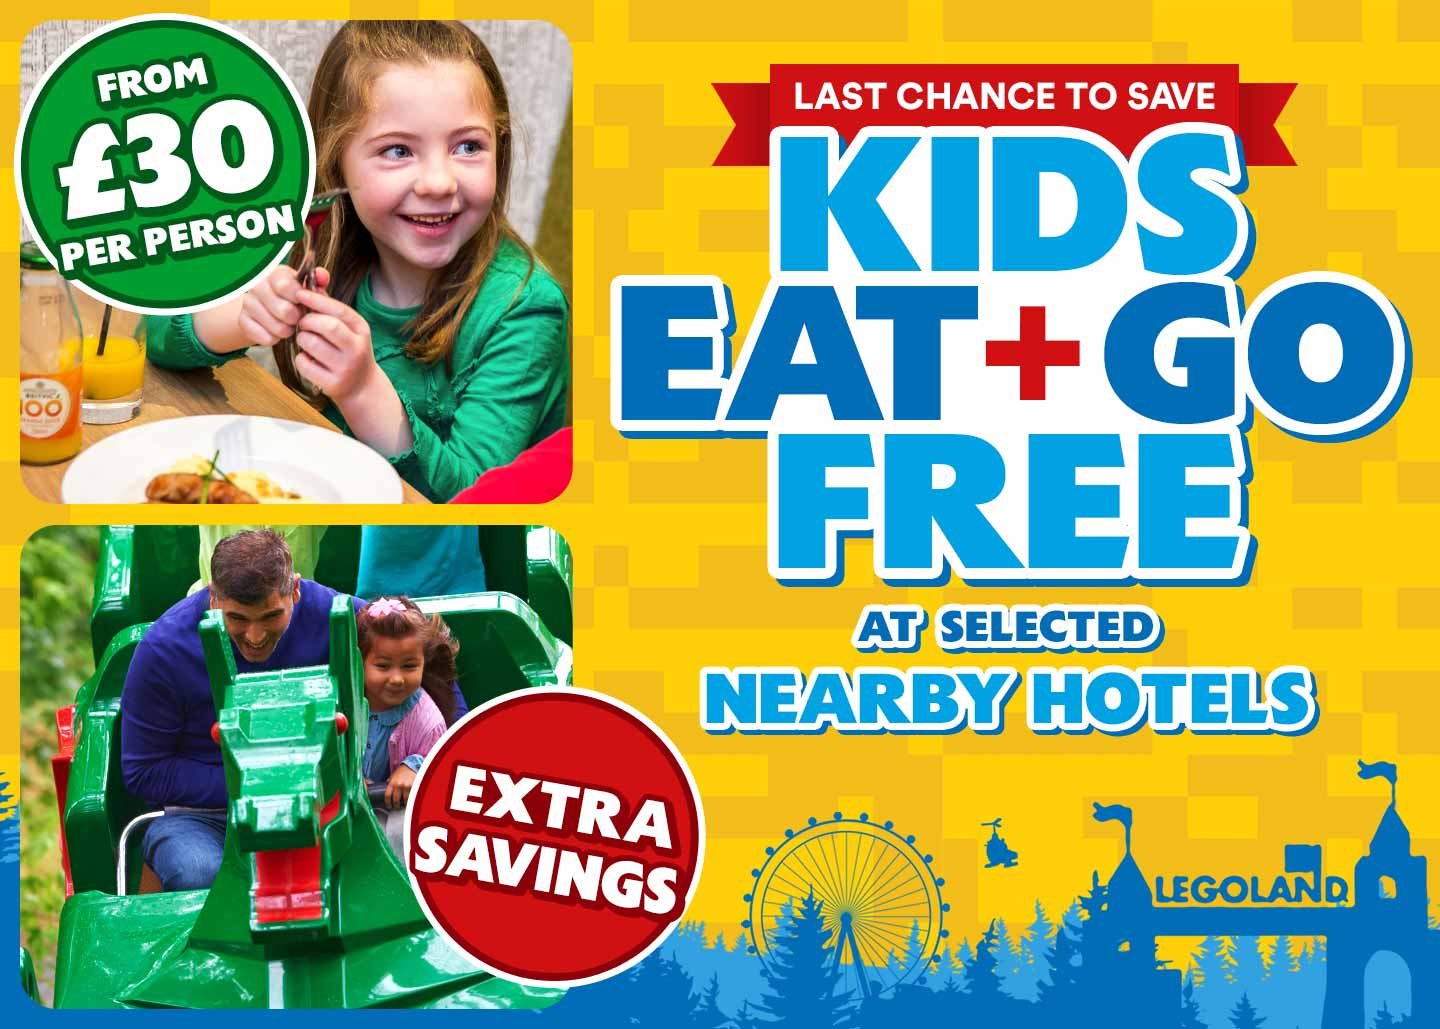 Kids Eat and Go FREE at the LEGOLAND Windsor Resort